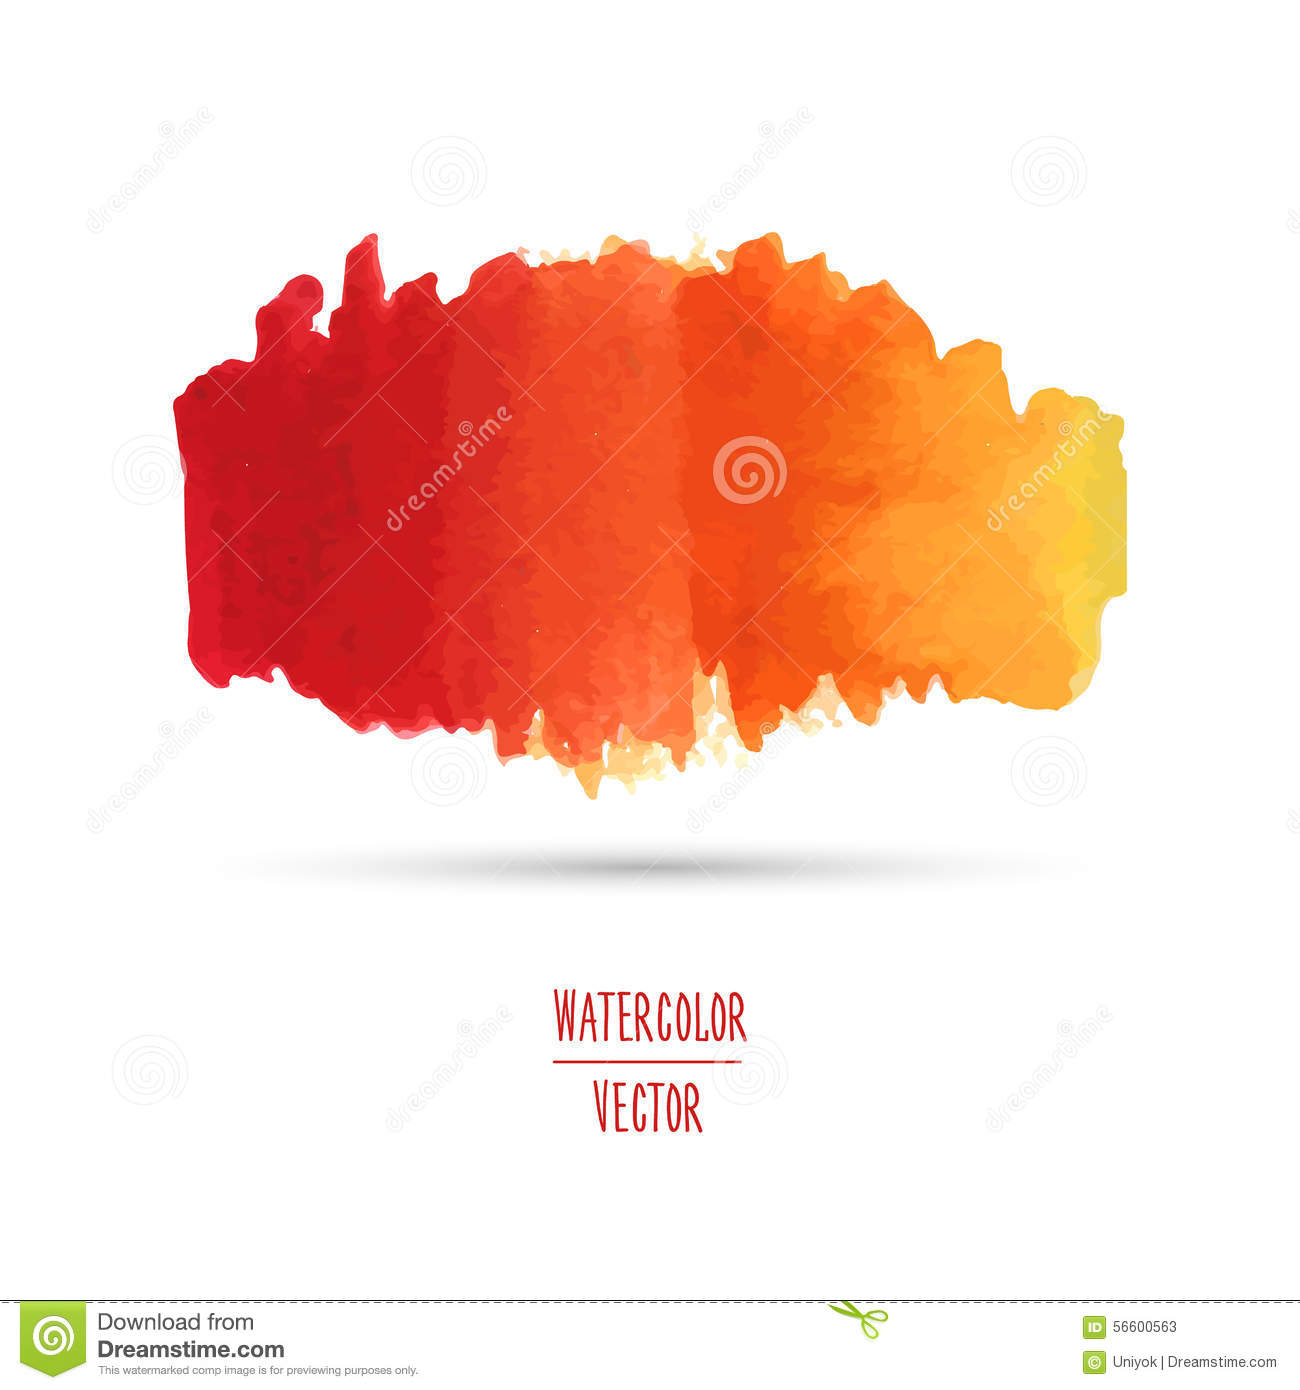 Watercolor Spot With A Gradient From Red To Yellow Stock Vector